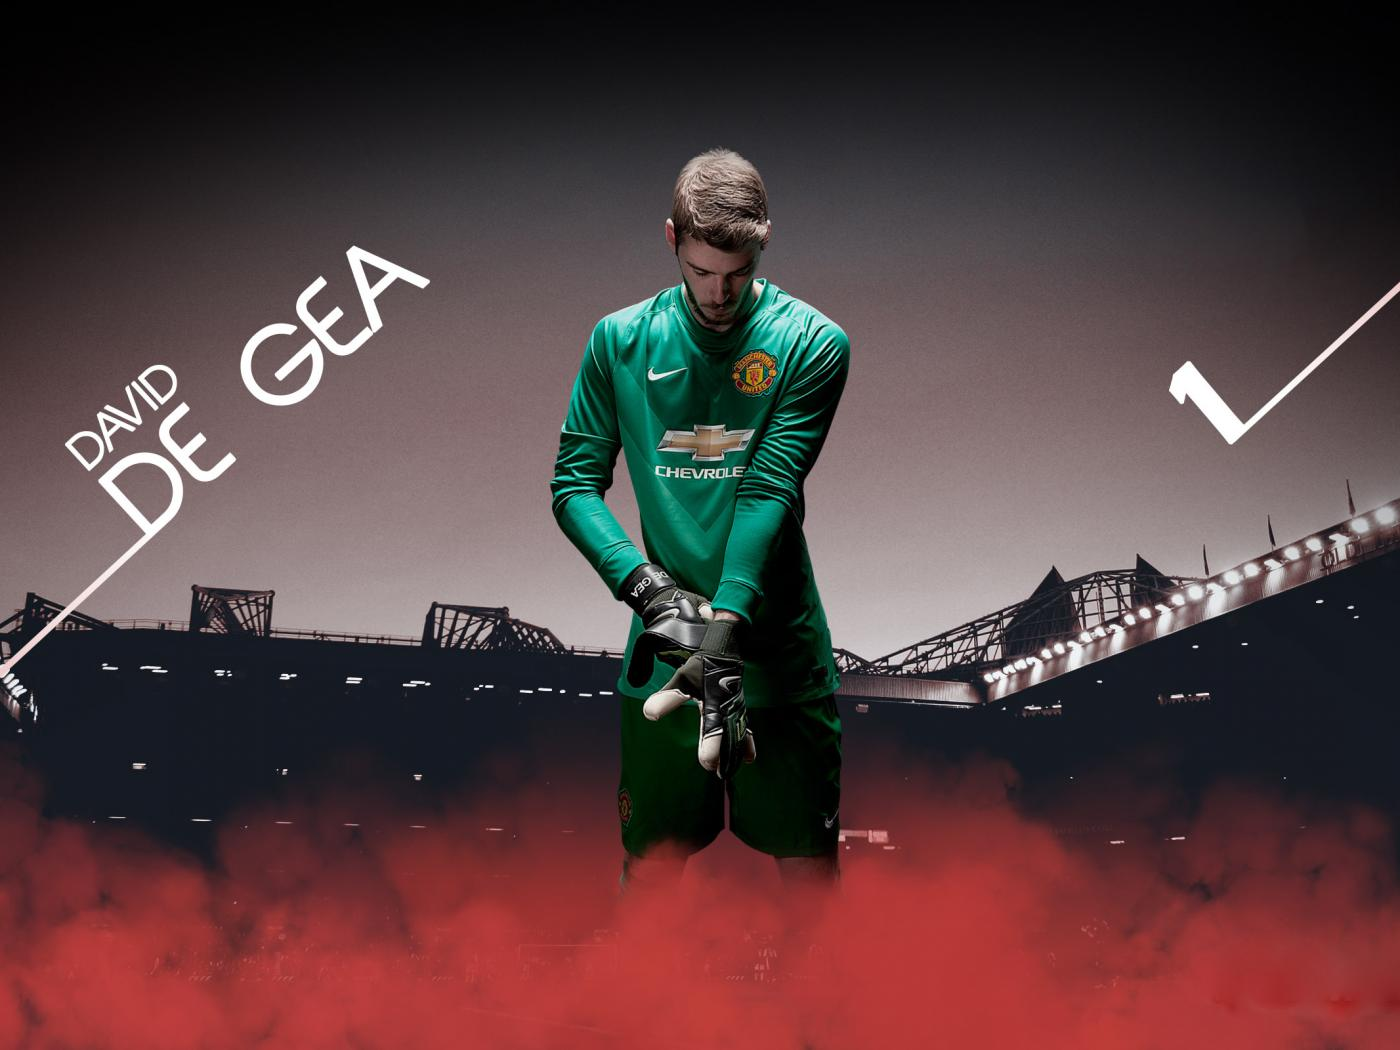 David De Gea Manchester United Goalkeeper Photo For